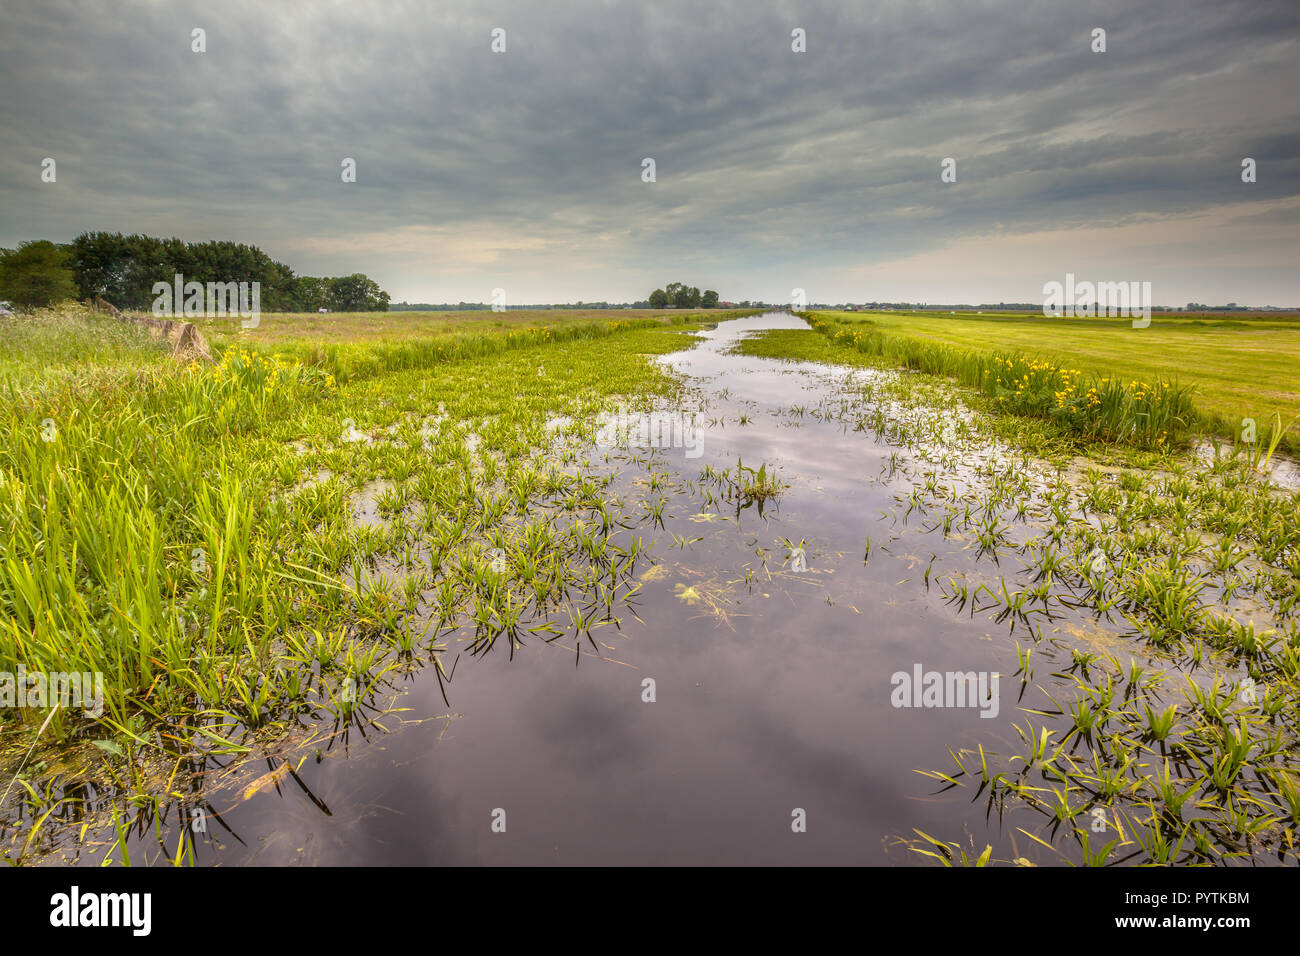 Water vegetation dominated by Water Soldier (Stratiotes aloides) also known as Crab's claw. This is the natural habitat of protected rare dragonfly sp Stock Photo